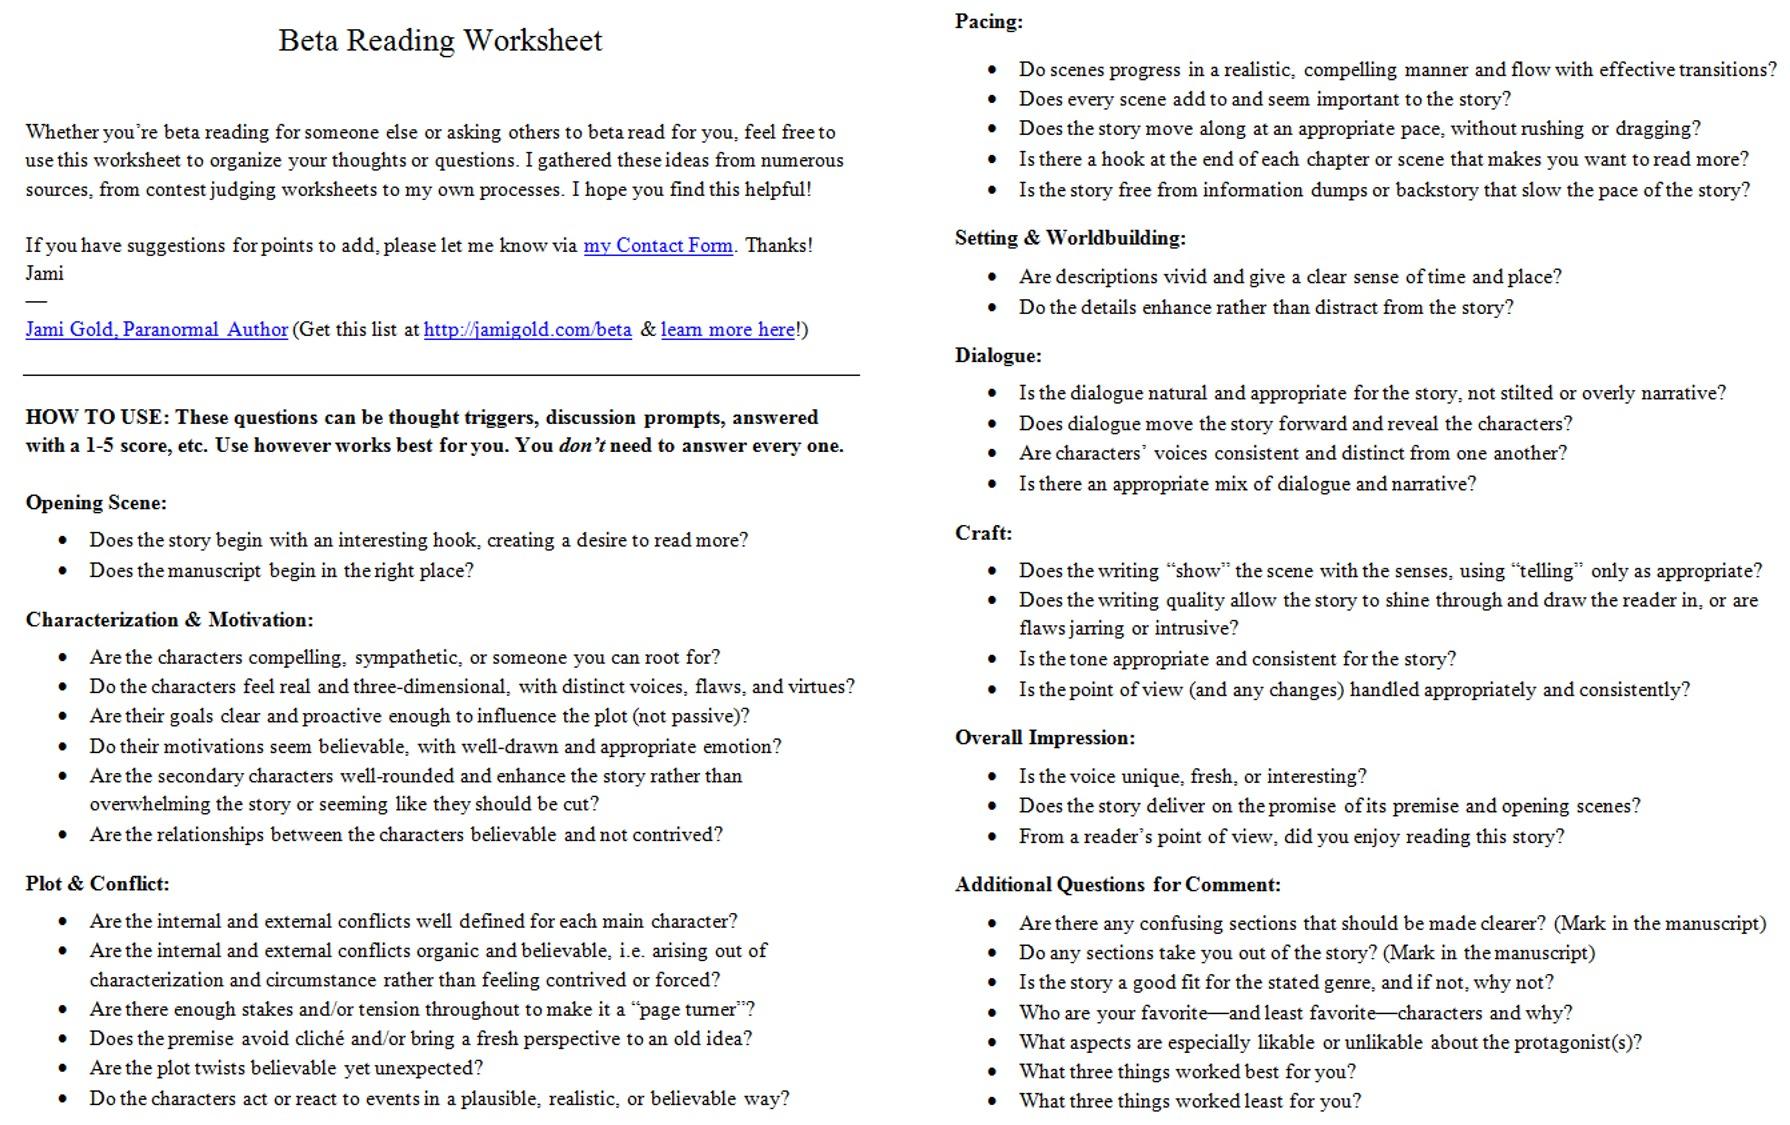 Aldiablosus  Mesmerizing Worksheets For Writers  Jami Gold Paranormal Author With Licious Screen Shot Of The Twopage Beta Reading Worksheet With Delectable Area   Perimeter Worksheets Also Set Theory Worksheet In Addition St Grade Map Skills Worksheets And Parts Of A Flowering Plant Worksheet As Well As Softschools Multiplication Worksheets Additionally Handwriting Worksheets For Kindergarten Printable From Jamigoldcom With Aldiablosus  Licious Worksheets For Writers  Jami Gold Paranormal Author With Delectable Screen Shot Of The Twopage Beta Reading Worksheet And Mesmerizing Area   Perimeter Worksheets Also Set Theory Worksheet In Addition St Grade Map Skills Worksheets From Jamigoldcom